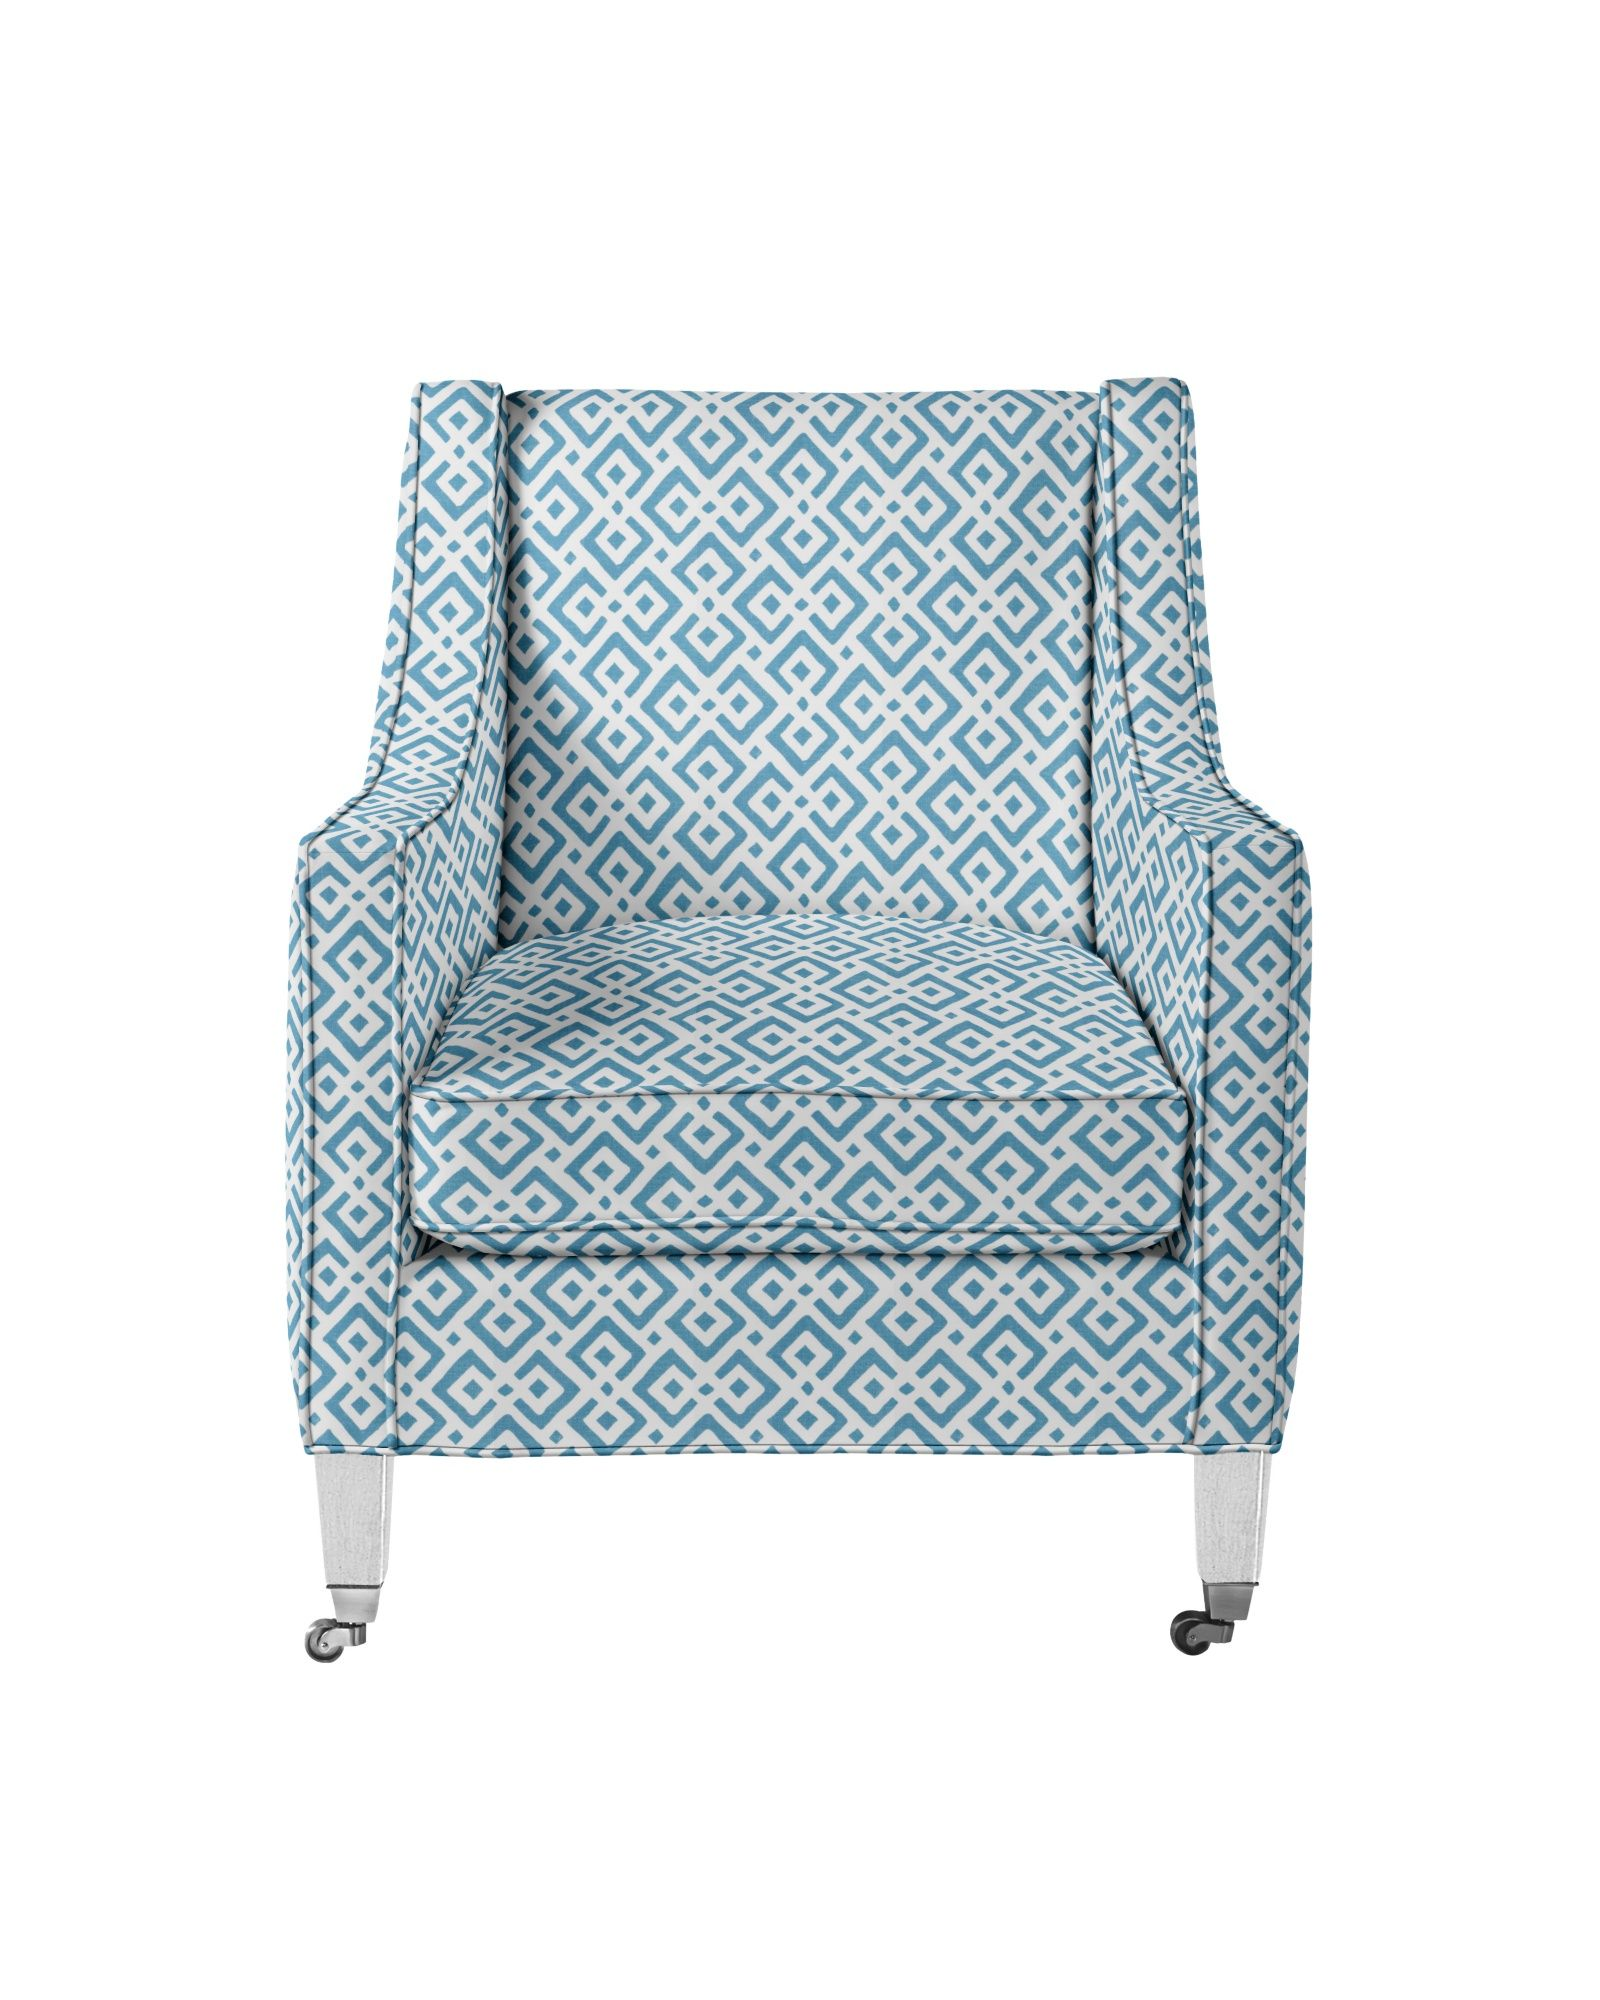 Piper Chair - Serena & Lily Site